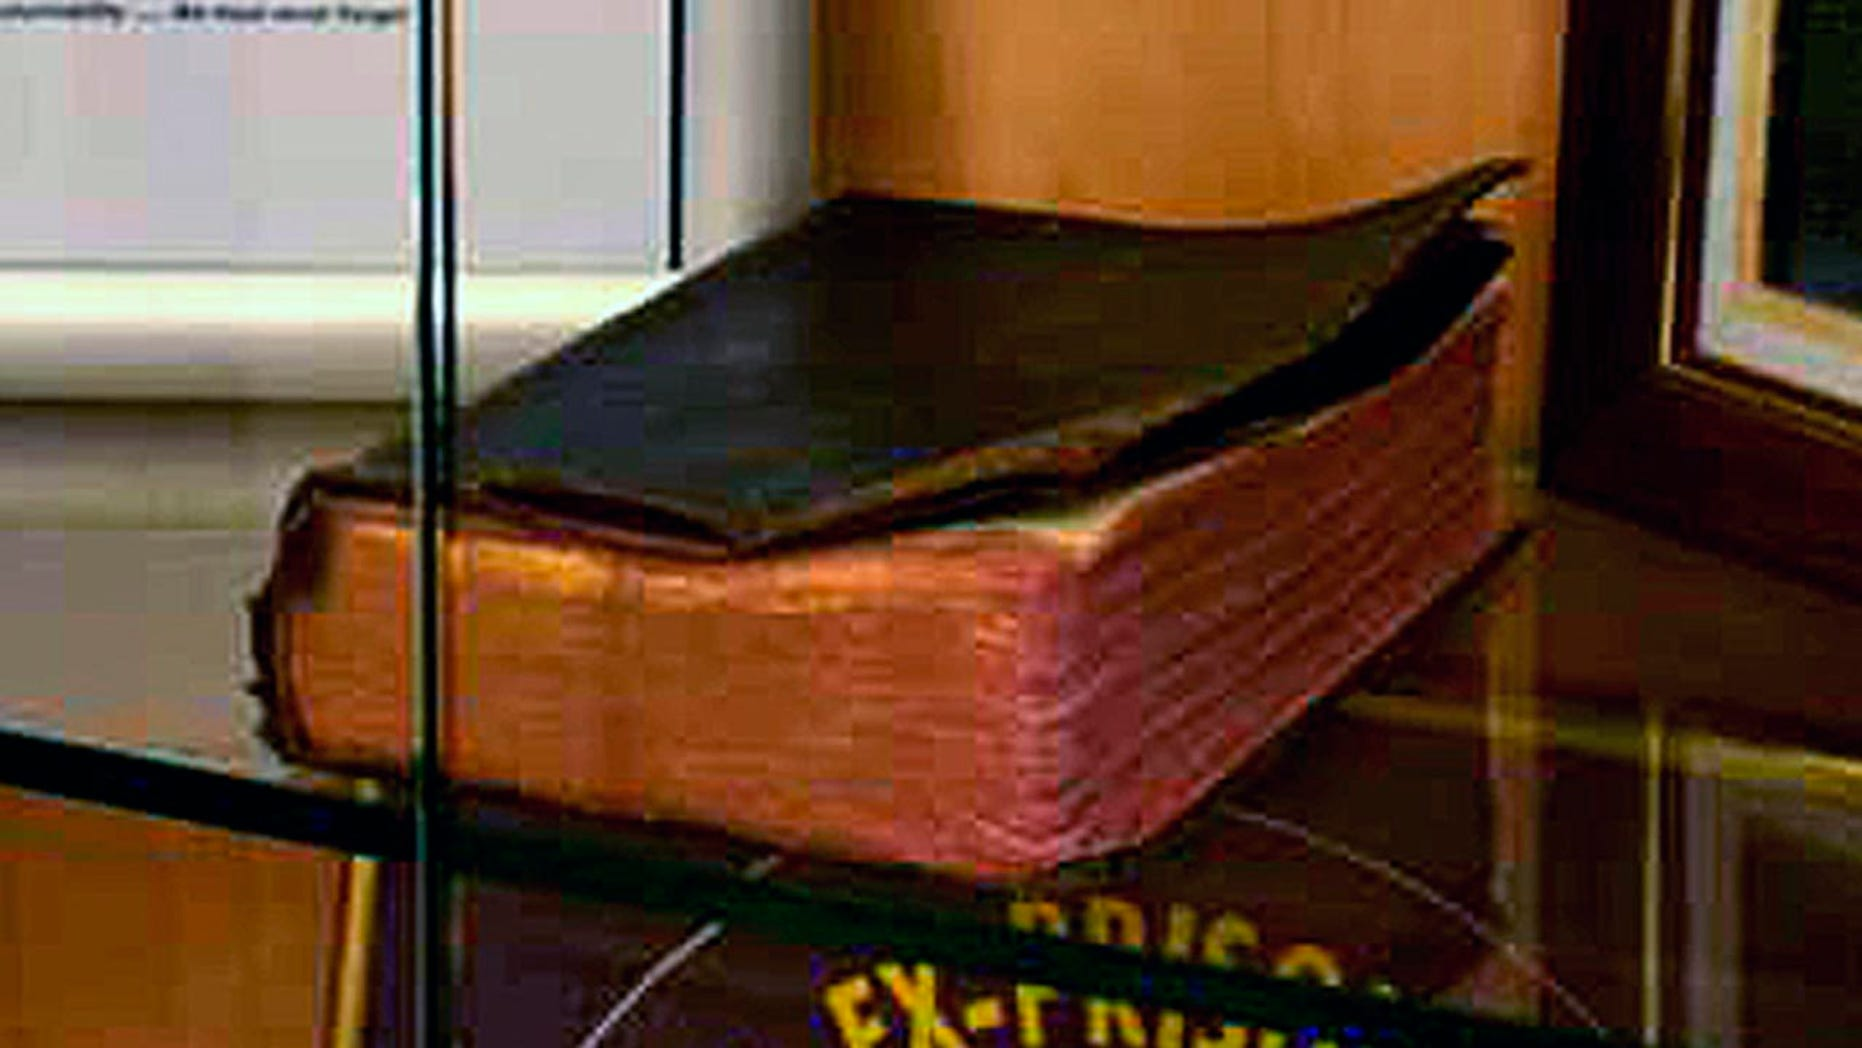 A Bible donated by a World War II veteran on display in a Manchester VA Medical Center memorial is being targeted by the Military Religious Freedom Foundation.